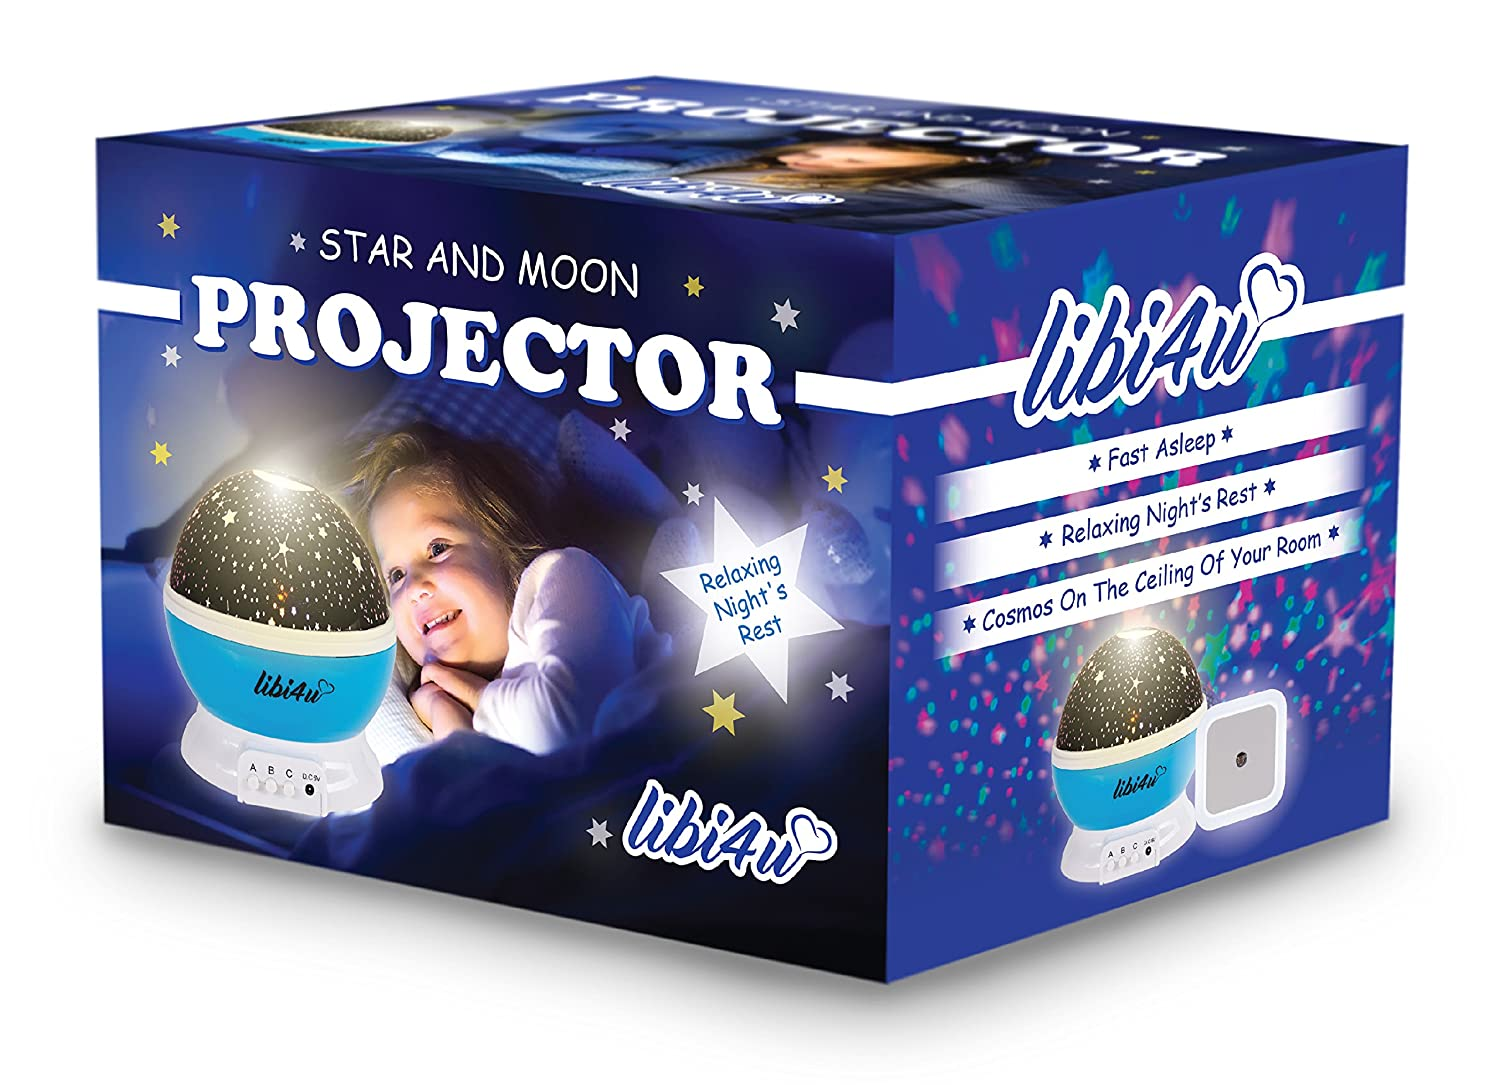 Bedroom planetarium projector for kids - Amazon Com Ceiling Stars For Kids Bedroom And Star Projector Night Light Planetarium For Baby Toddler Nursery And Kids With Bonus Led Lamp Smart Sensor